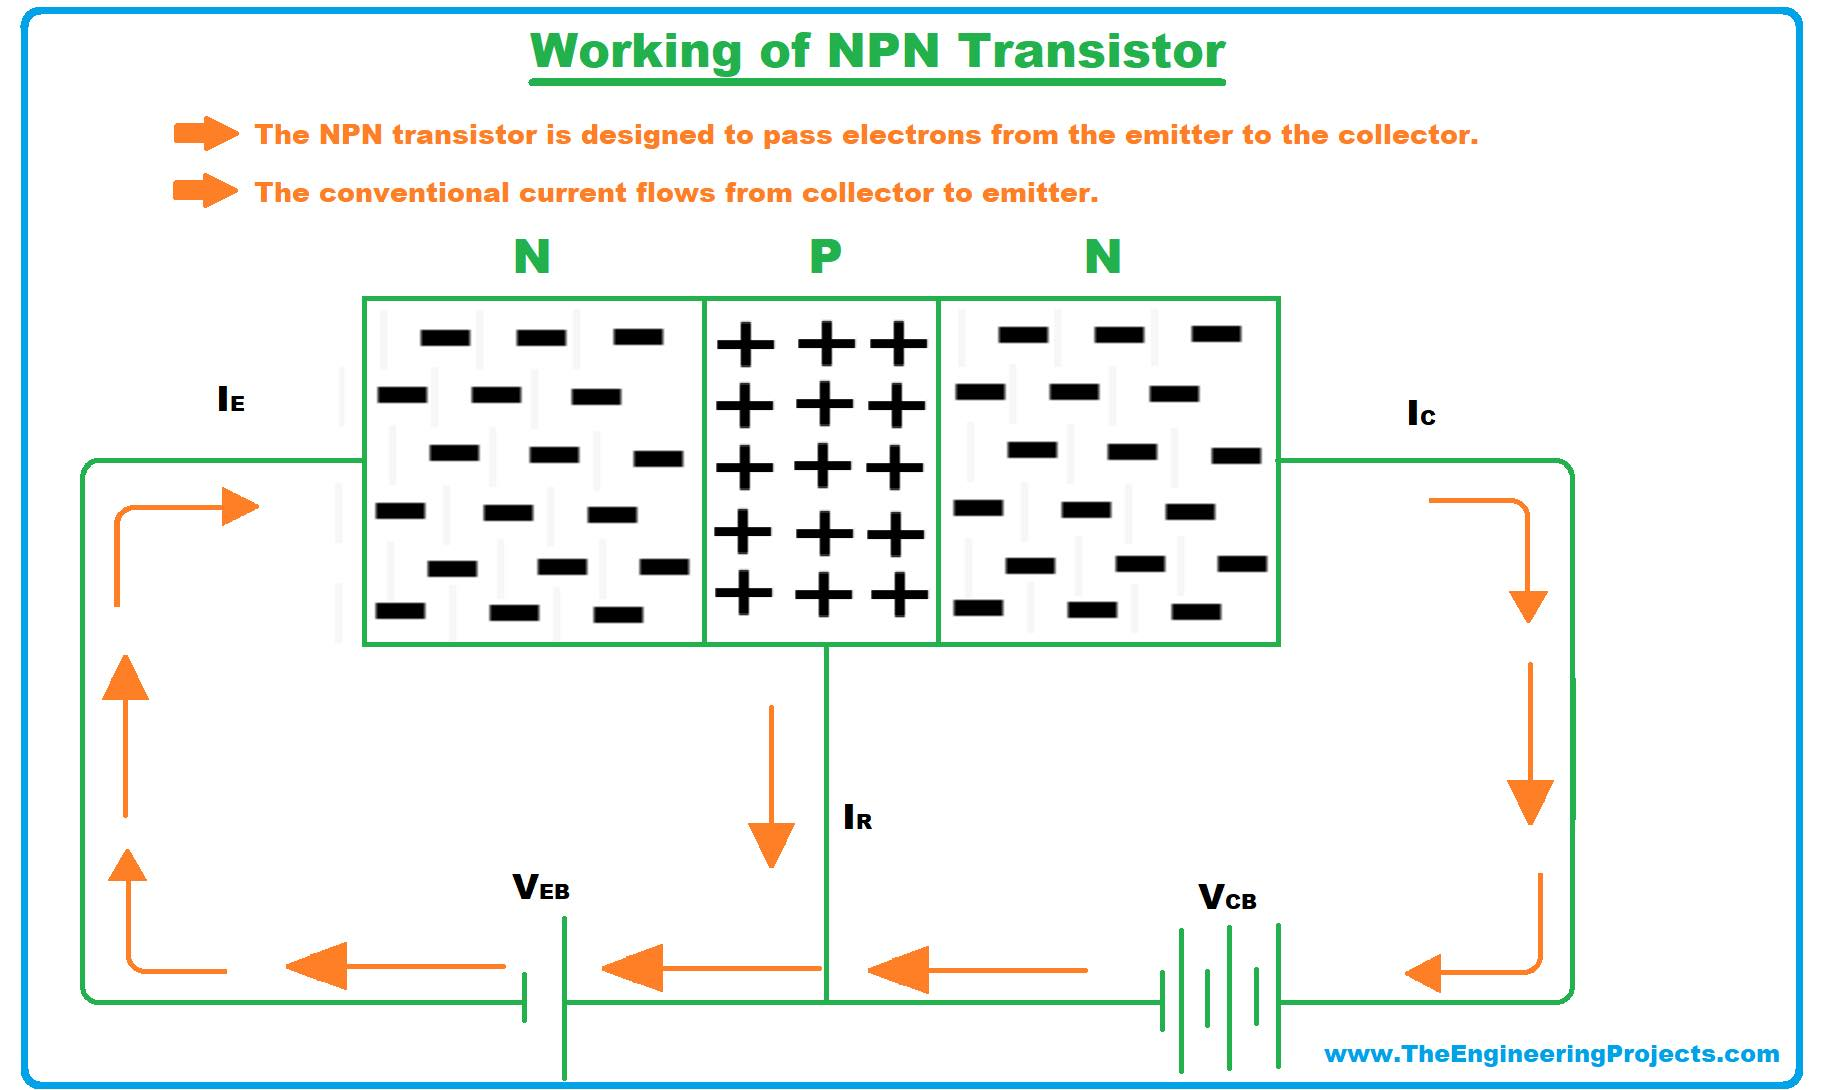 NPN transistor, what is NPN transistor, NPN transistor symbol, NPN transistor circuit, working of NPN transistor, how NPN transistor works, NPN transistor working